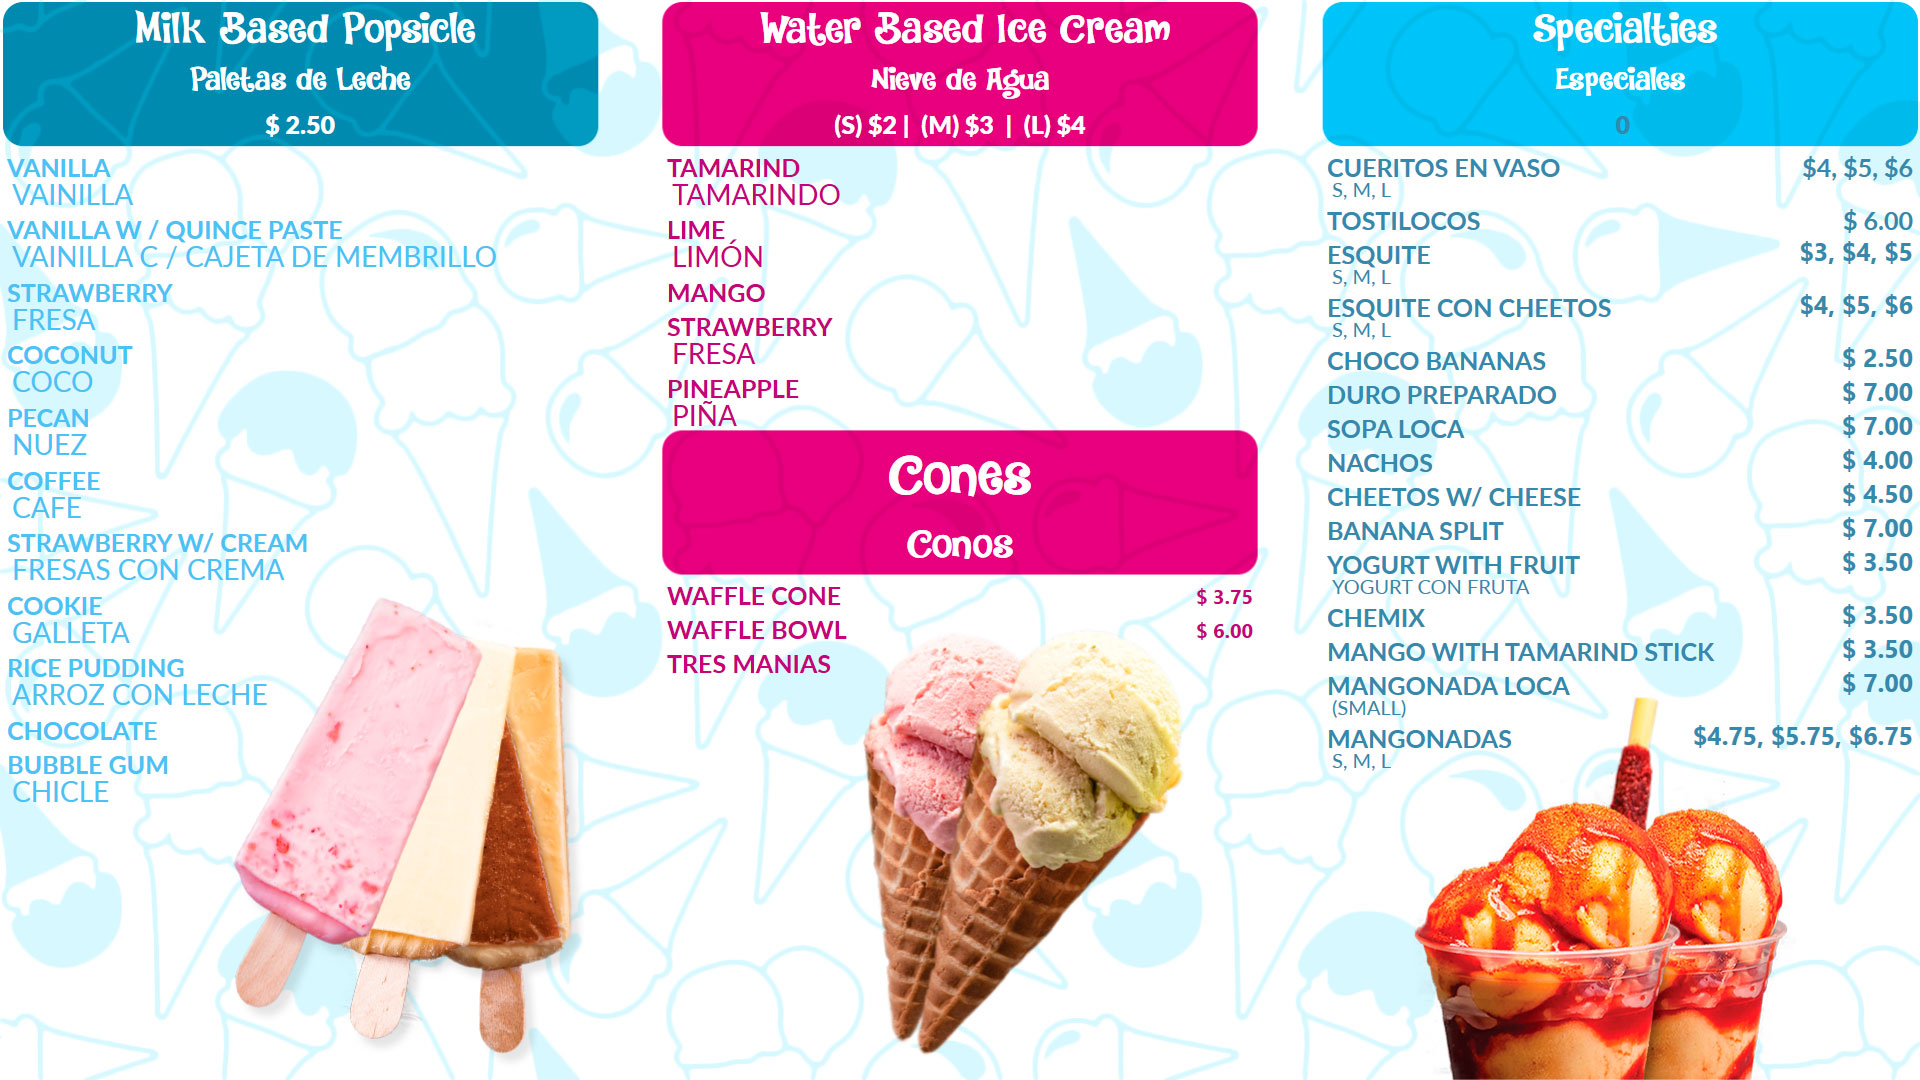 Digital Signage for Ice Cream Shop